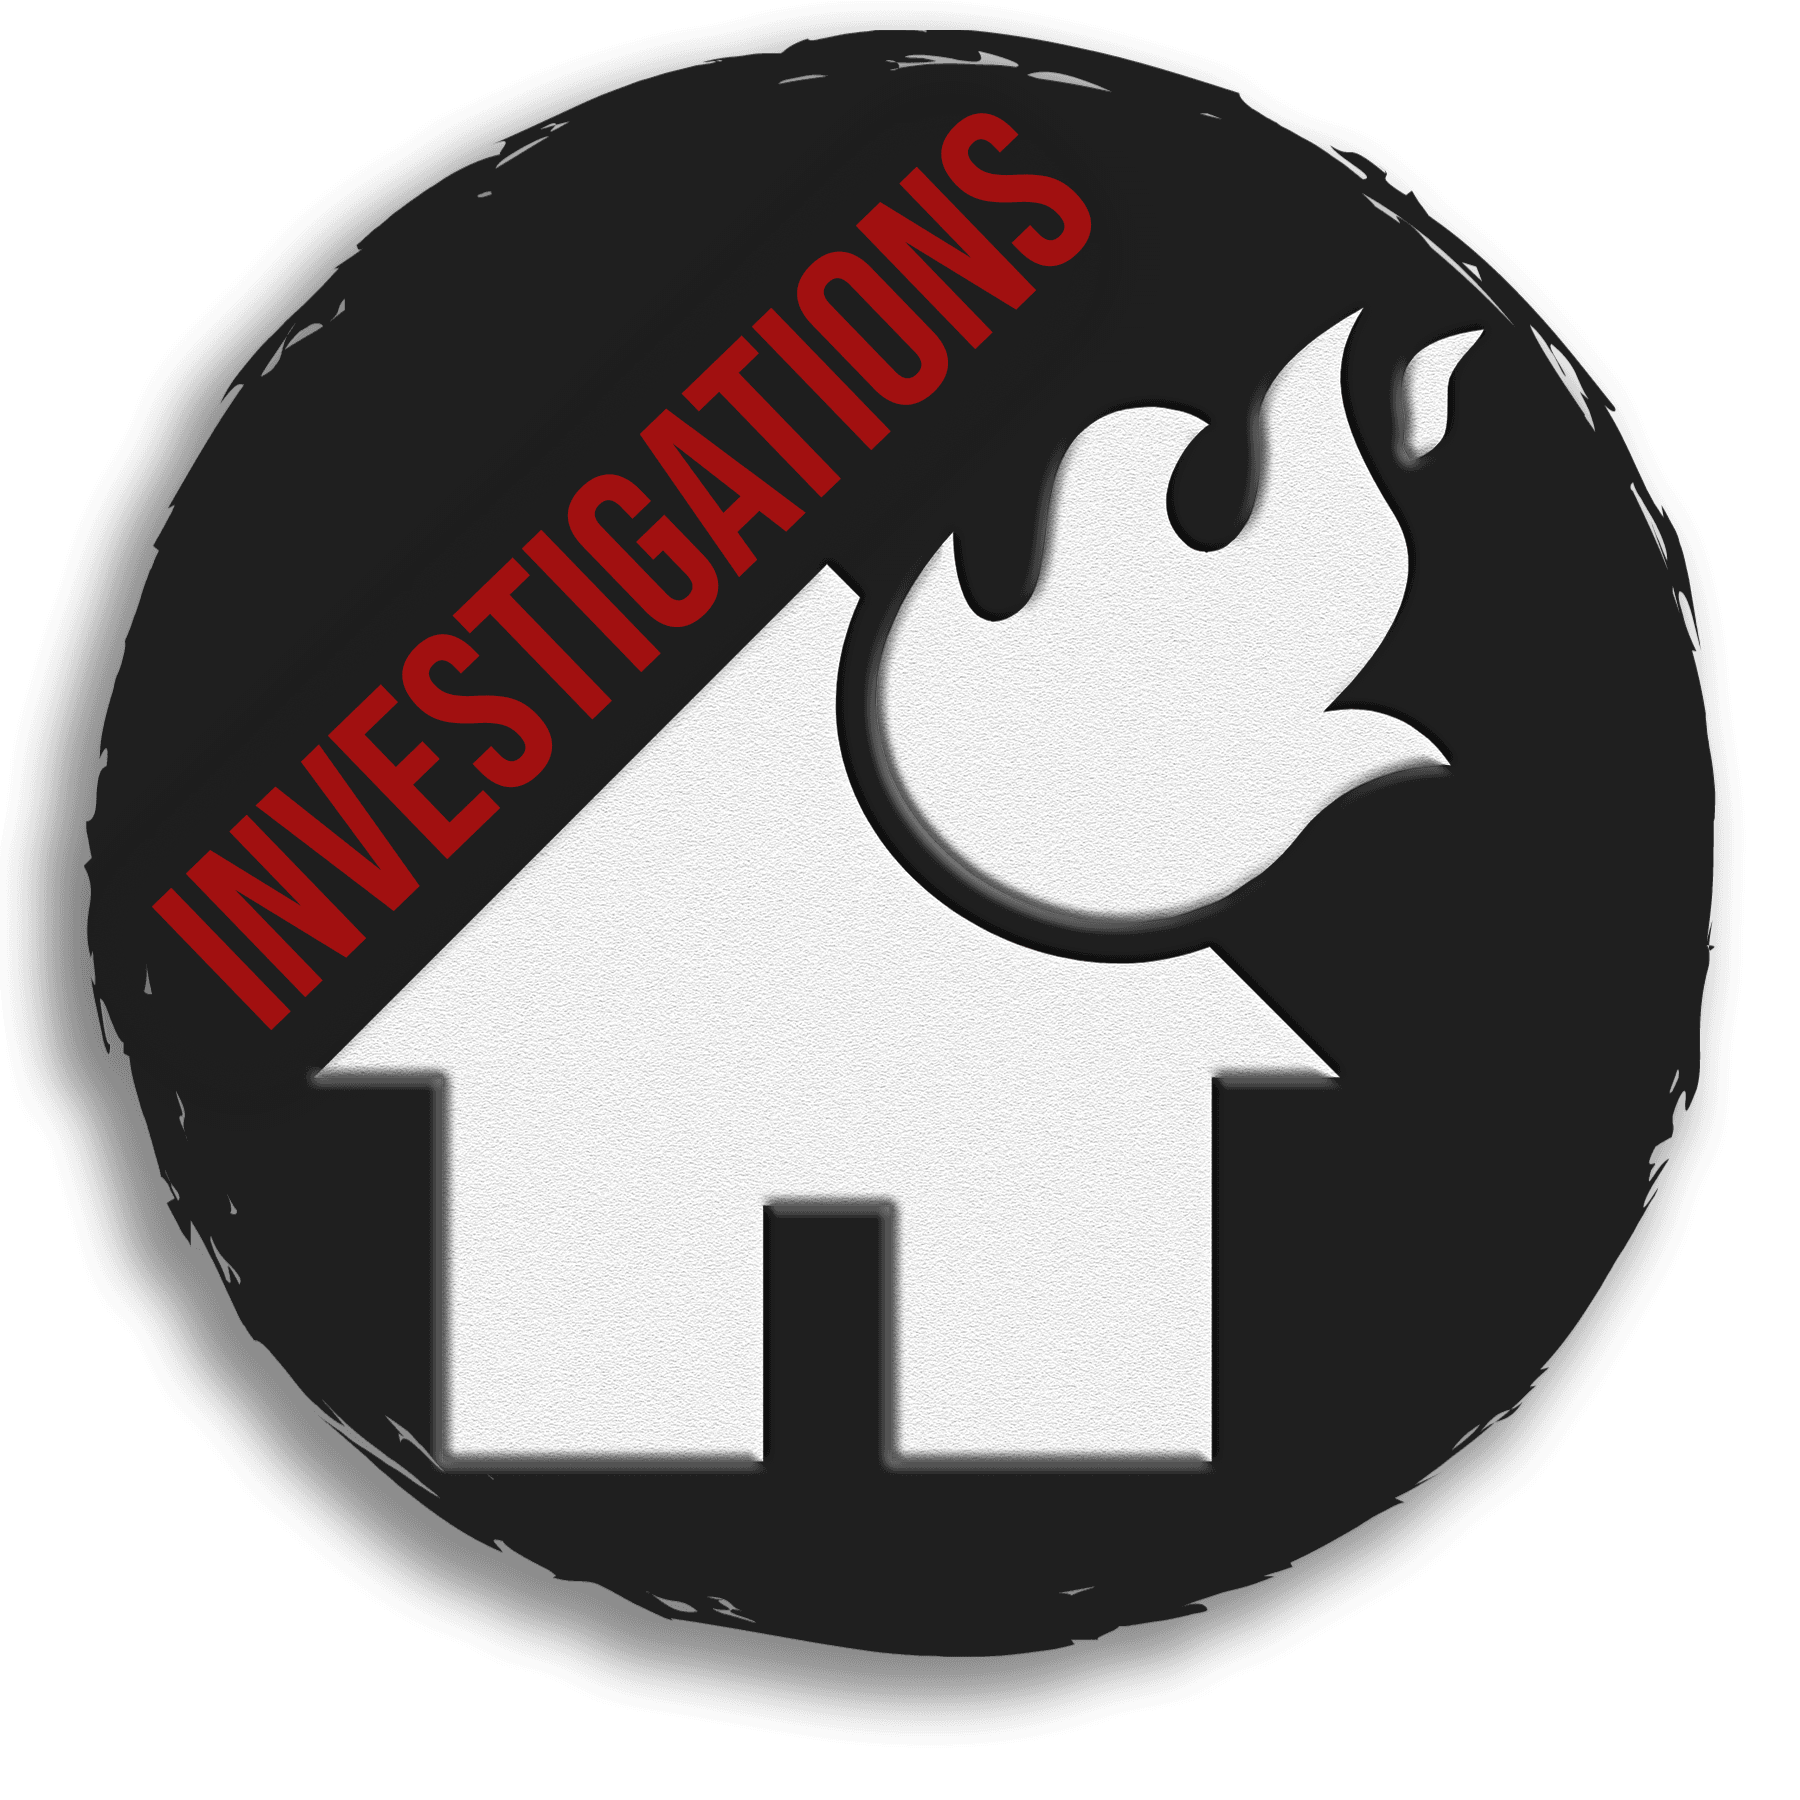 INVESTIGATIONS Opens in new window